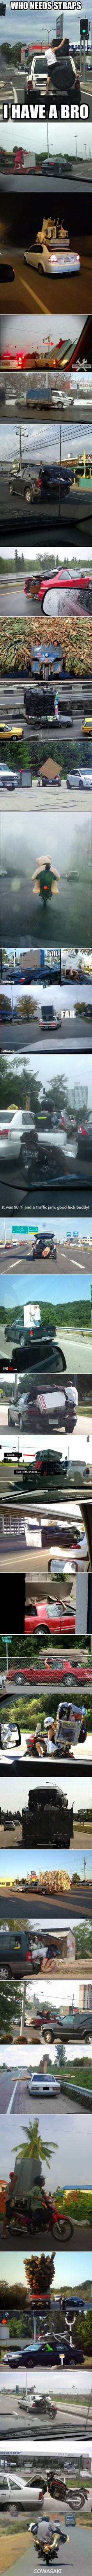 We have rounded up some strange and bizarre, yet real, examples of how not to transport things.